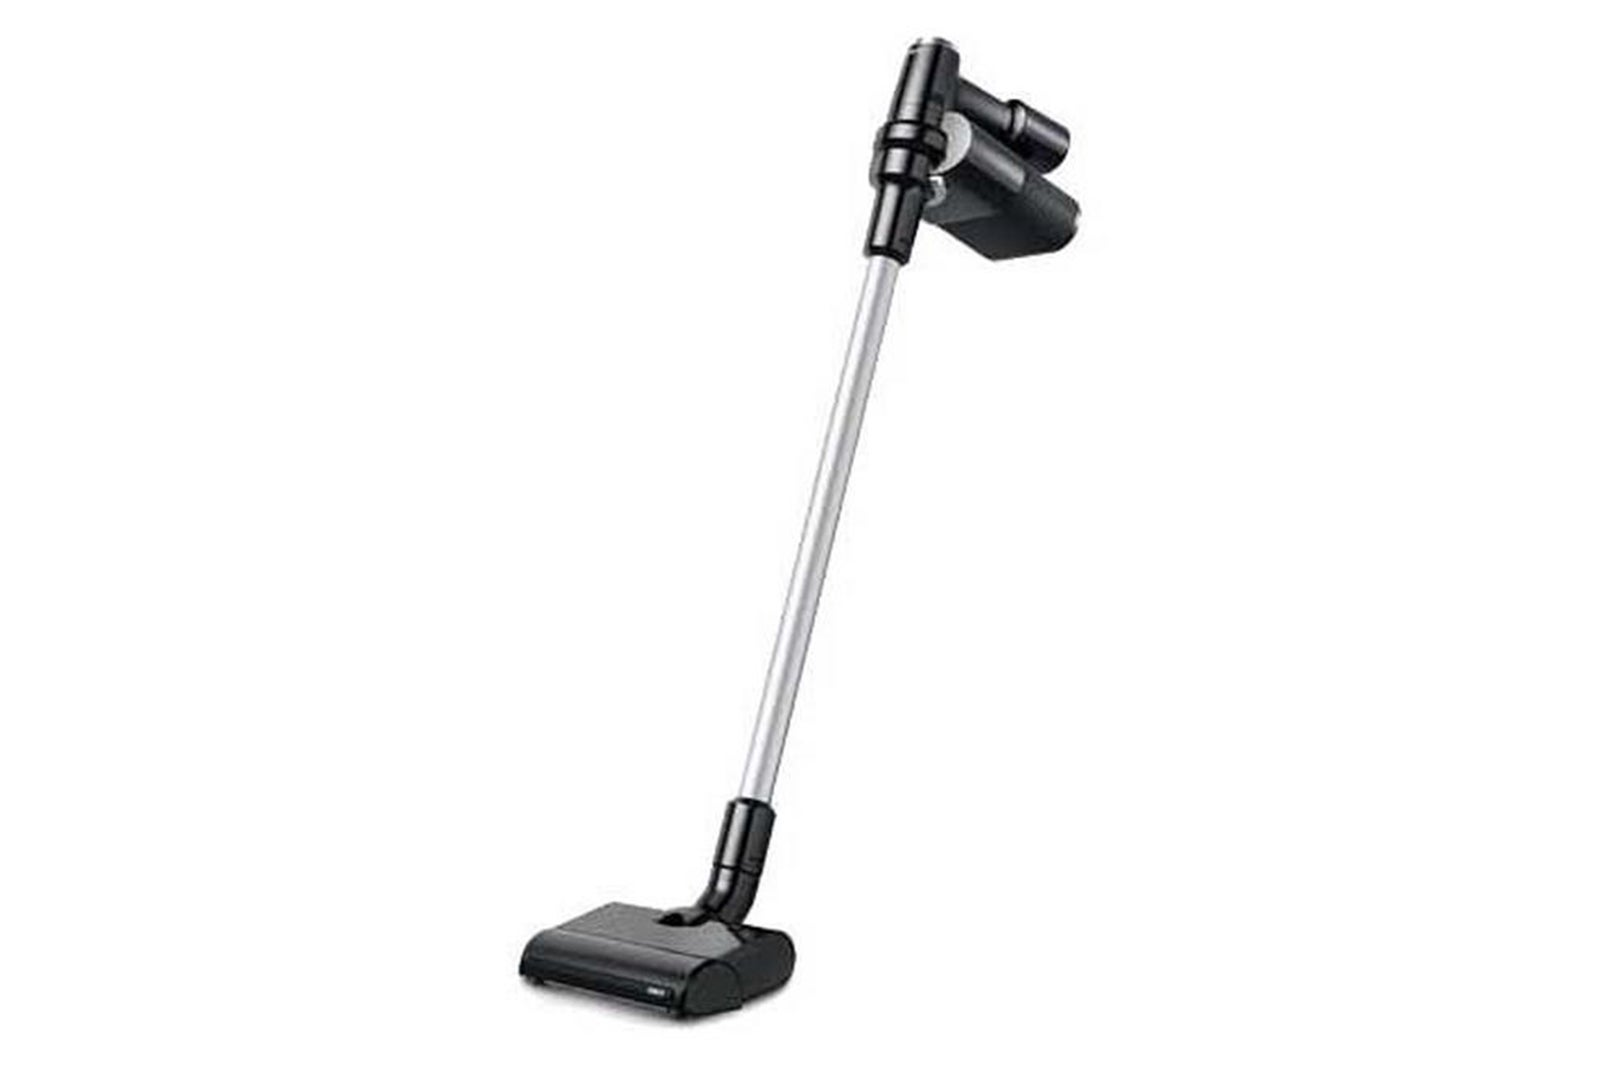 Oreck Cordless Vacuum with POD Technology review: This